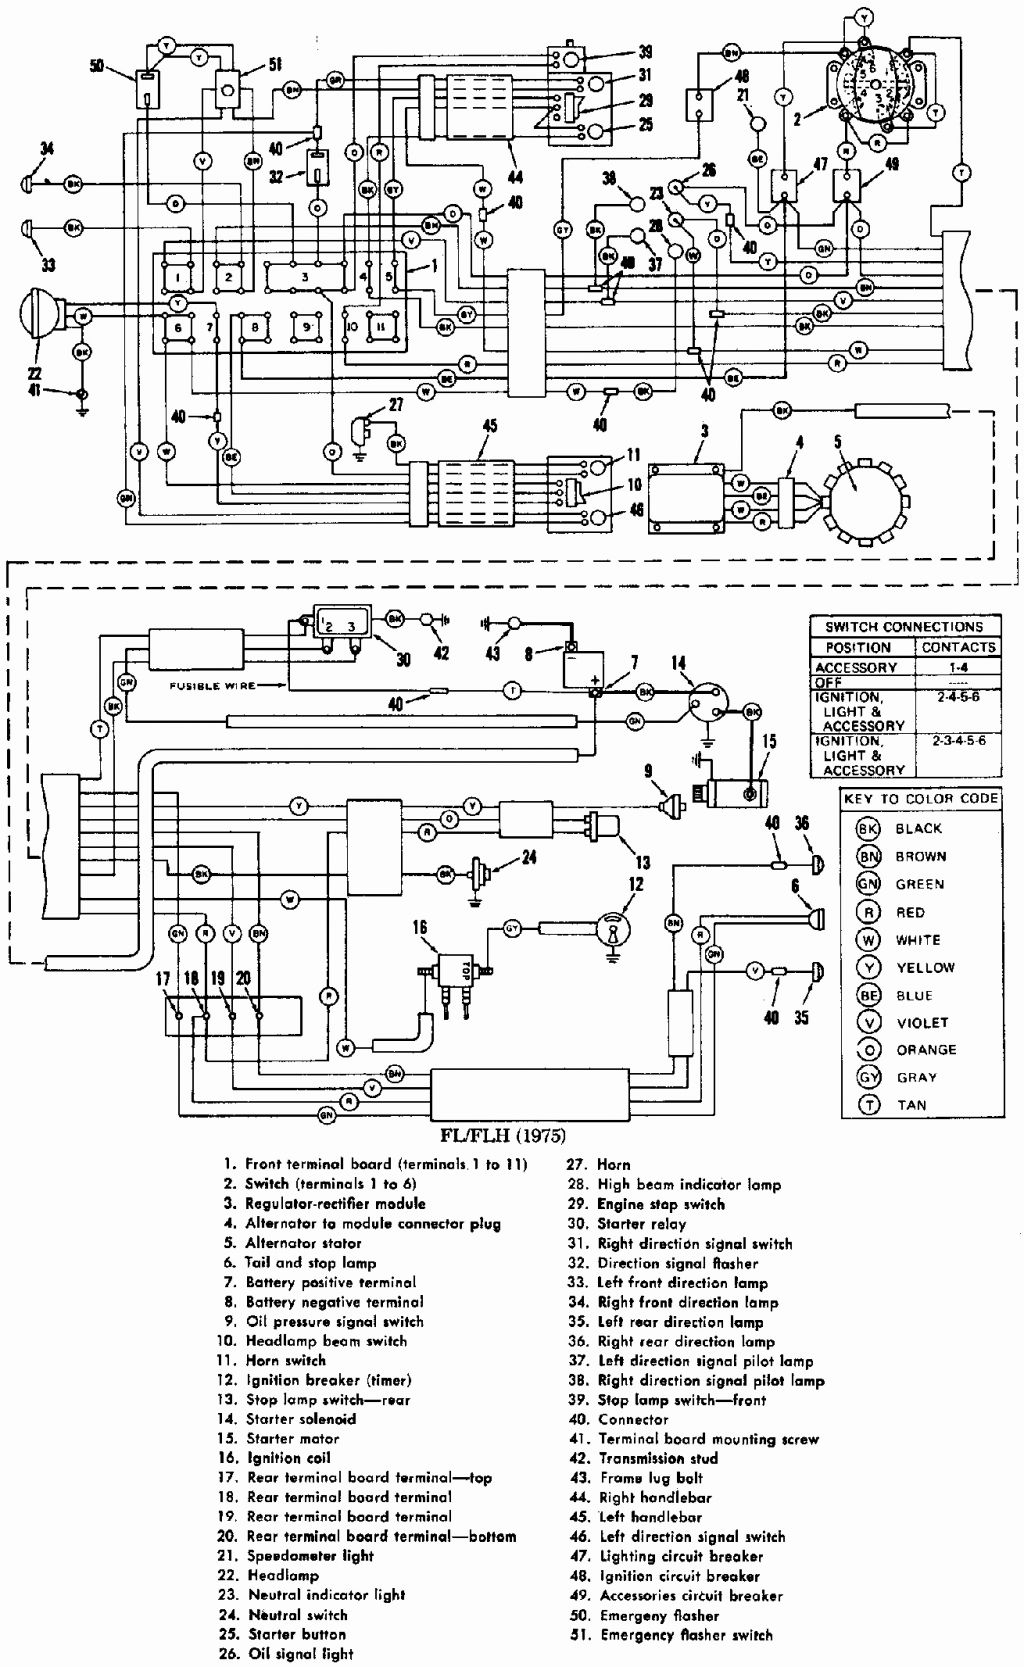 Flh Dash Wiring Diagram | Wiring Diagram Harley Flhtc Wiring Diagram Lights on